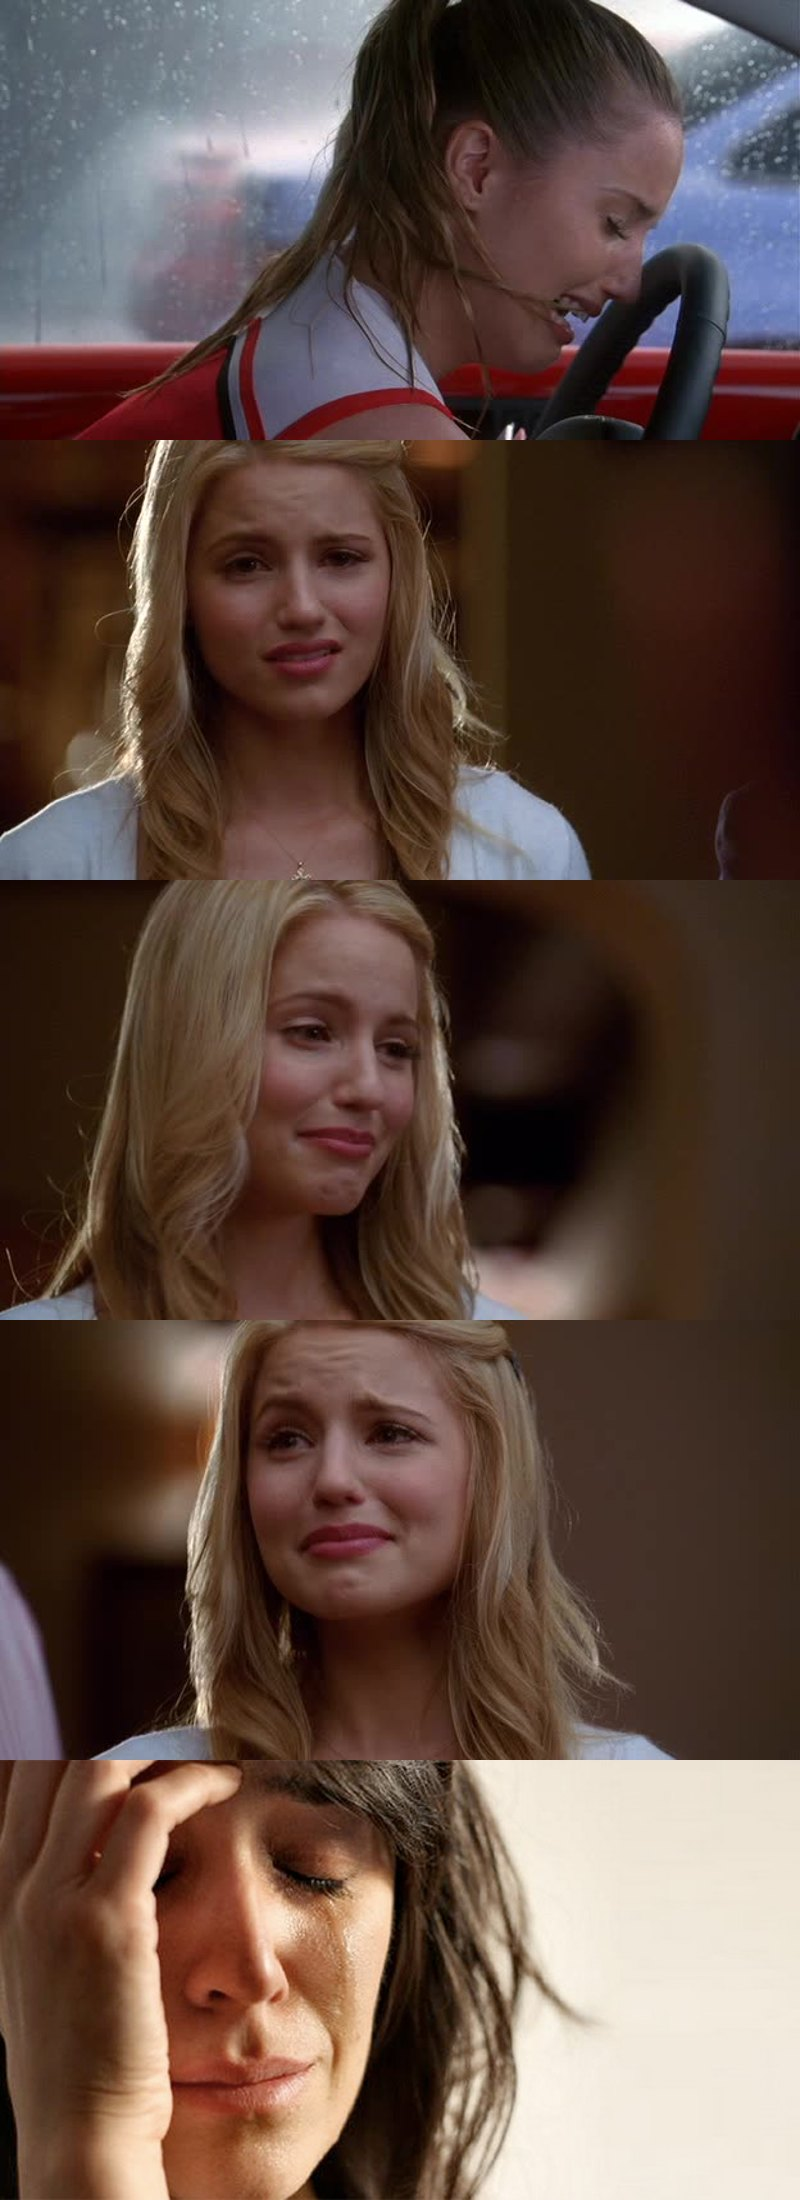 QUINN FABRAY BEST CHARACTER EVER